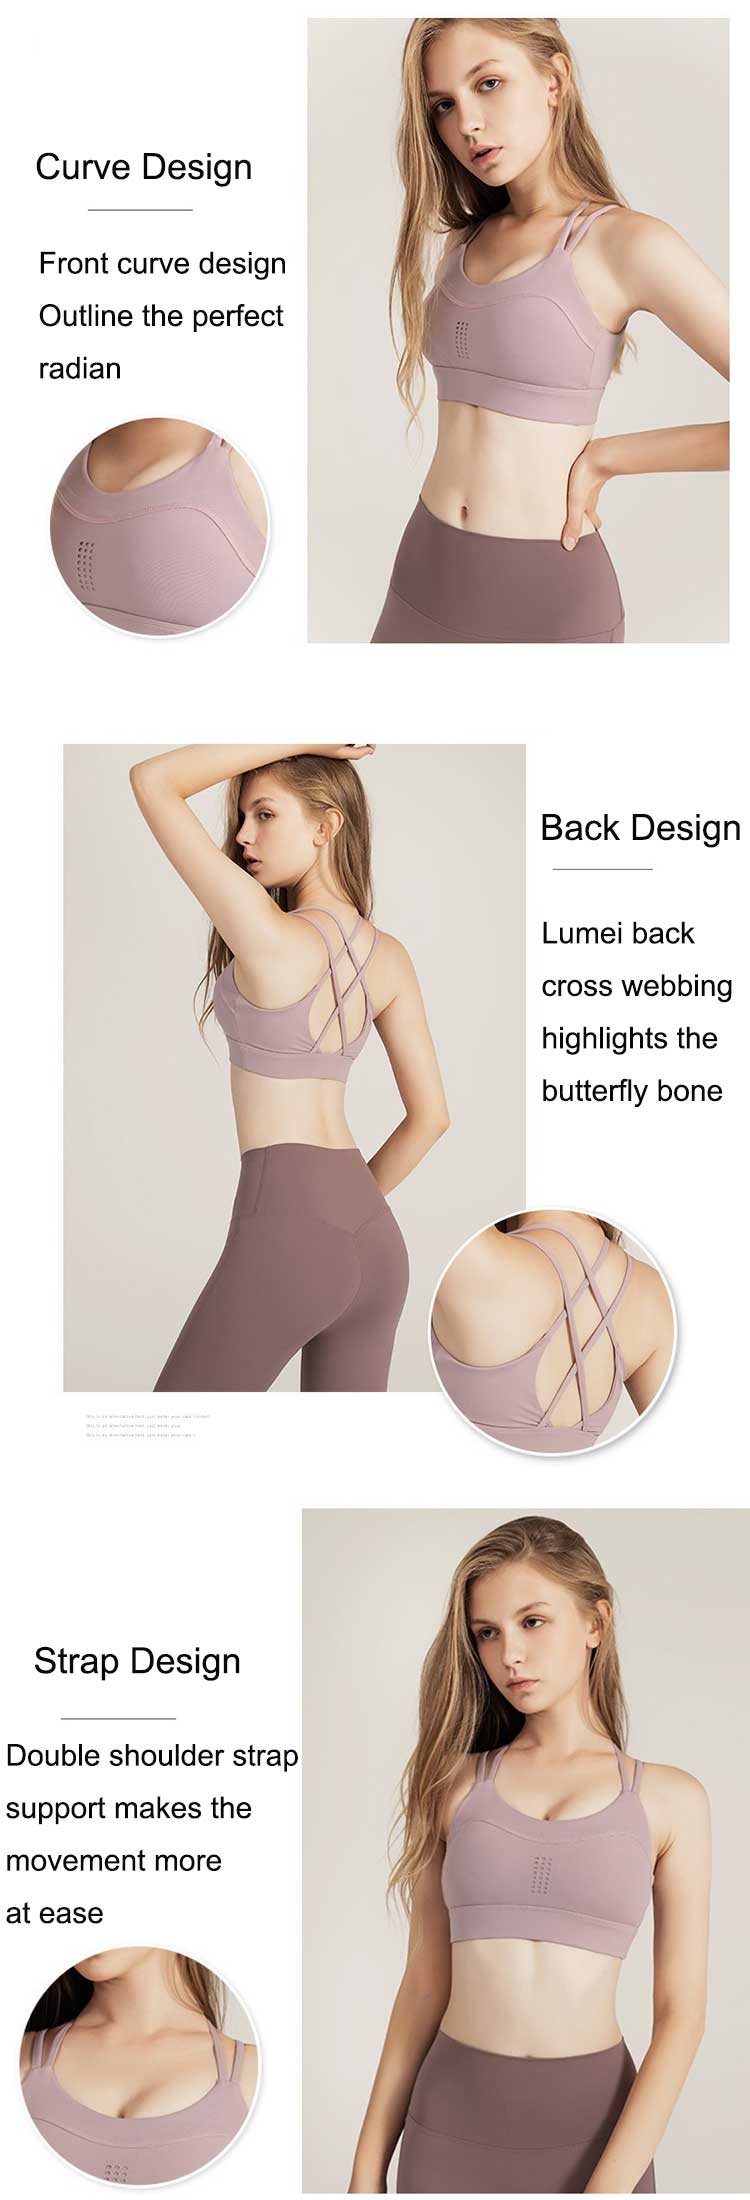 Cross-back-sports-bra-showing-the-sexy-clavicle-while-fitting-the-female-chest-curve.